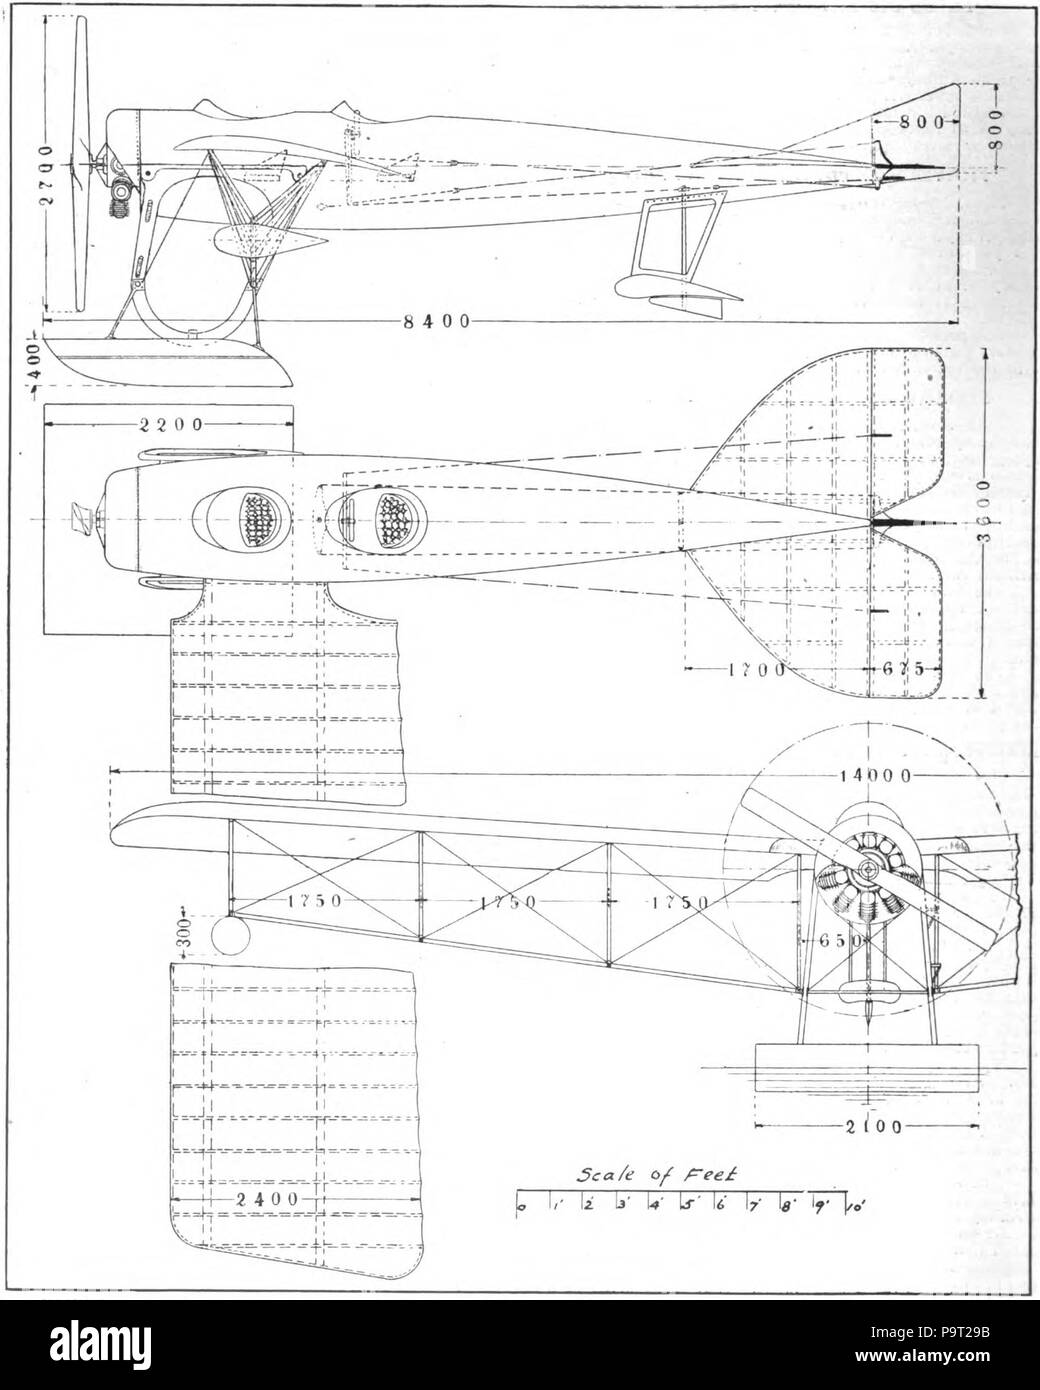 248 British deperdusson monoplane hydro.- Aero and Hydro volume 1 pg 279 - Stock Image